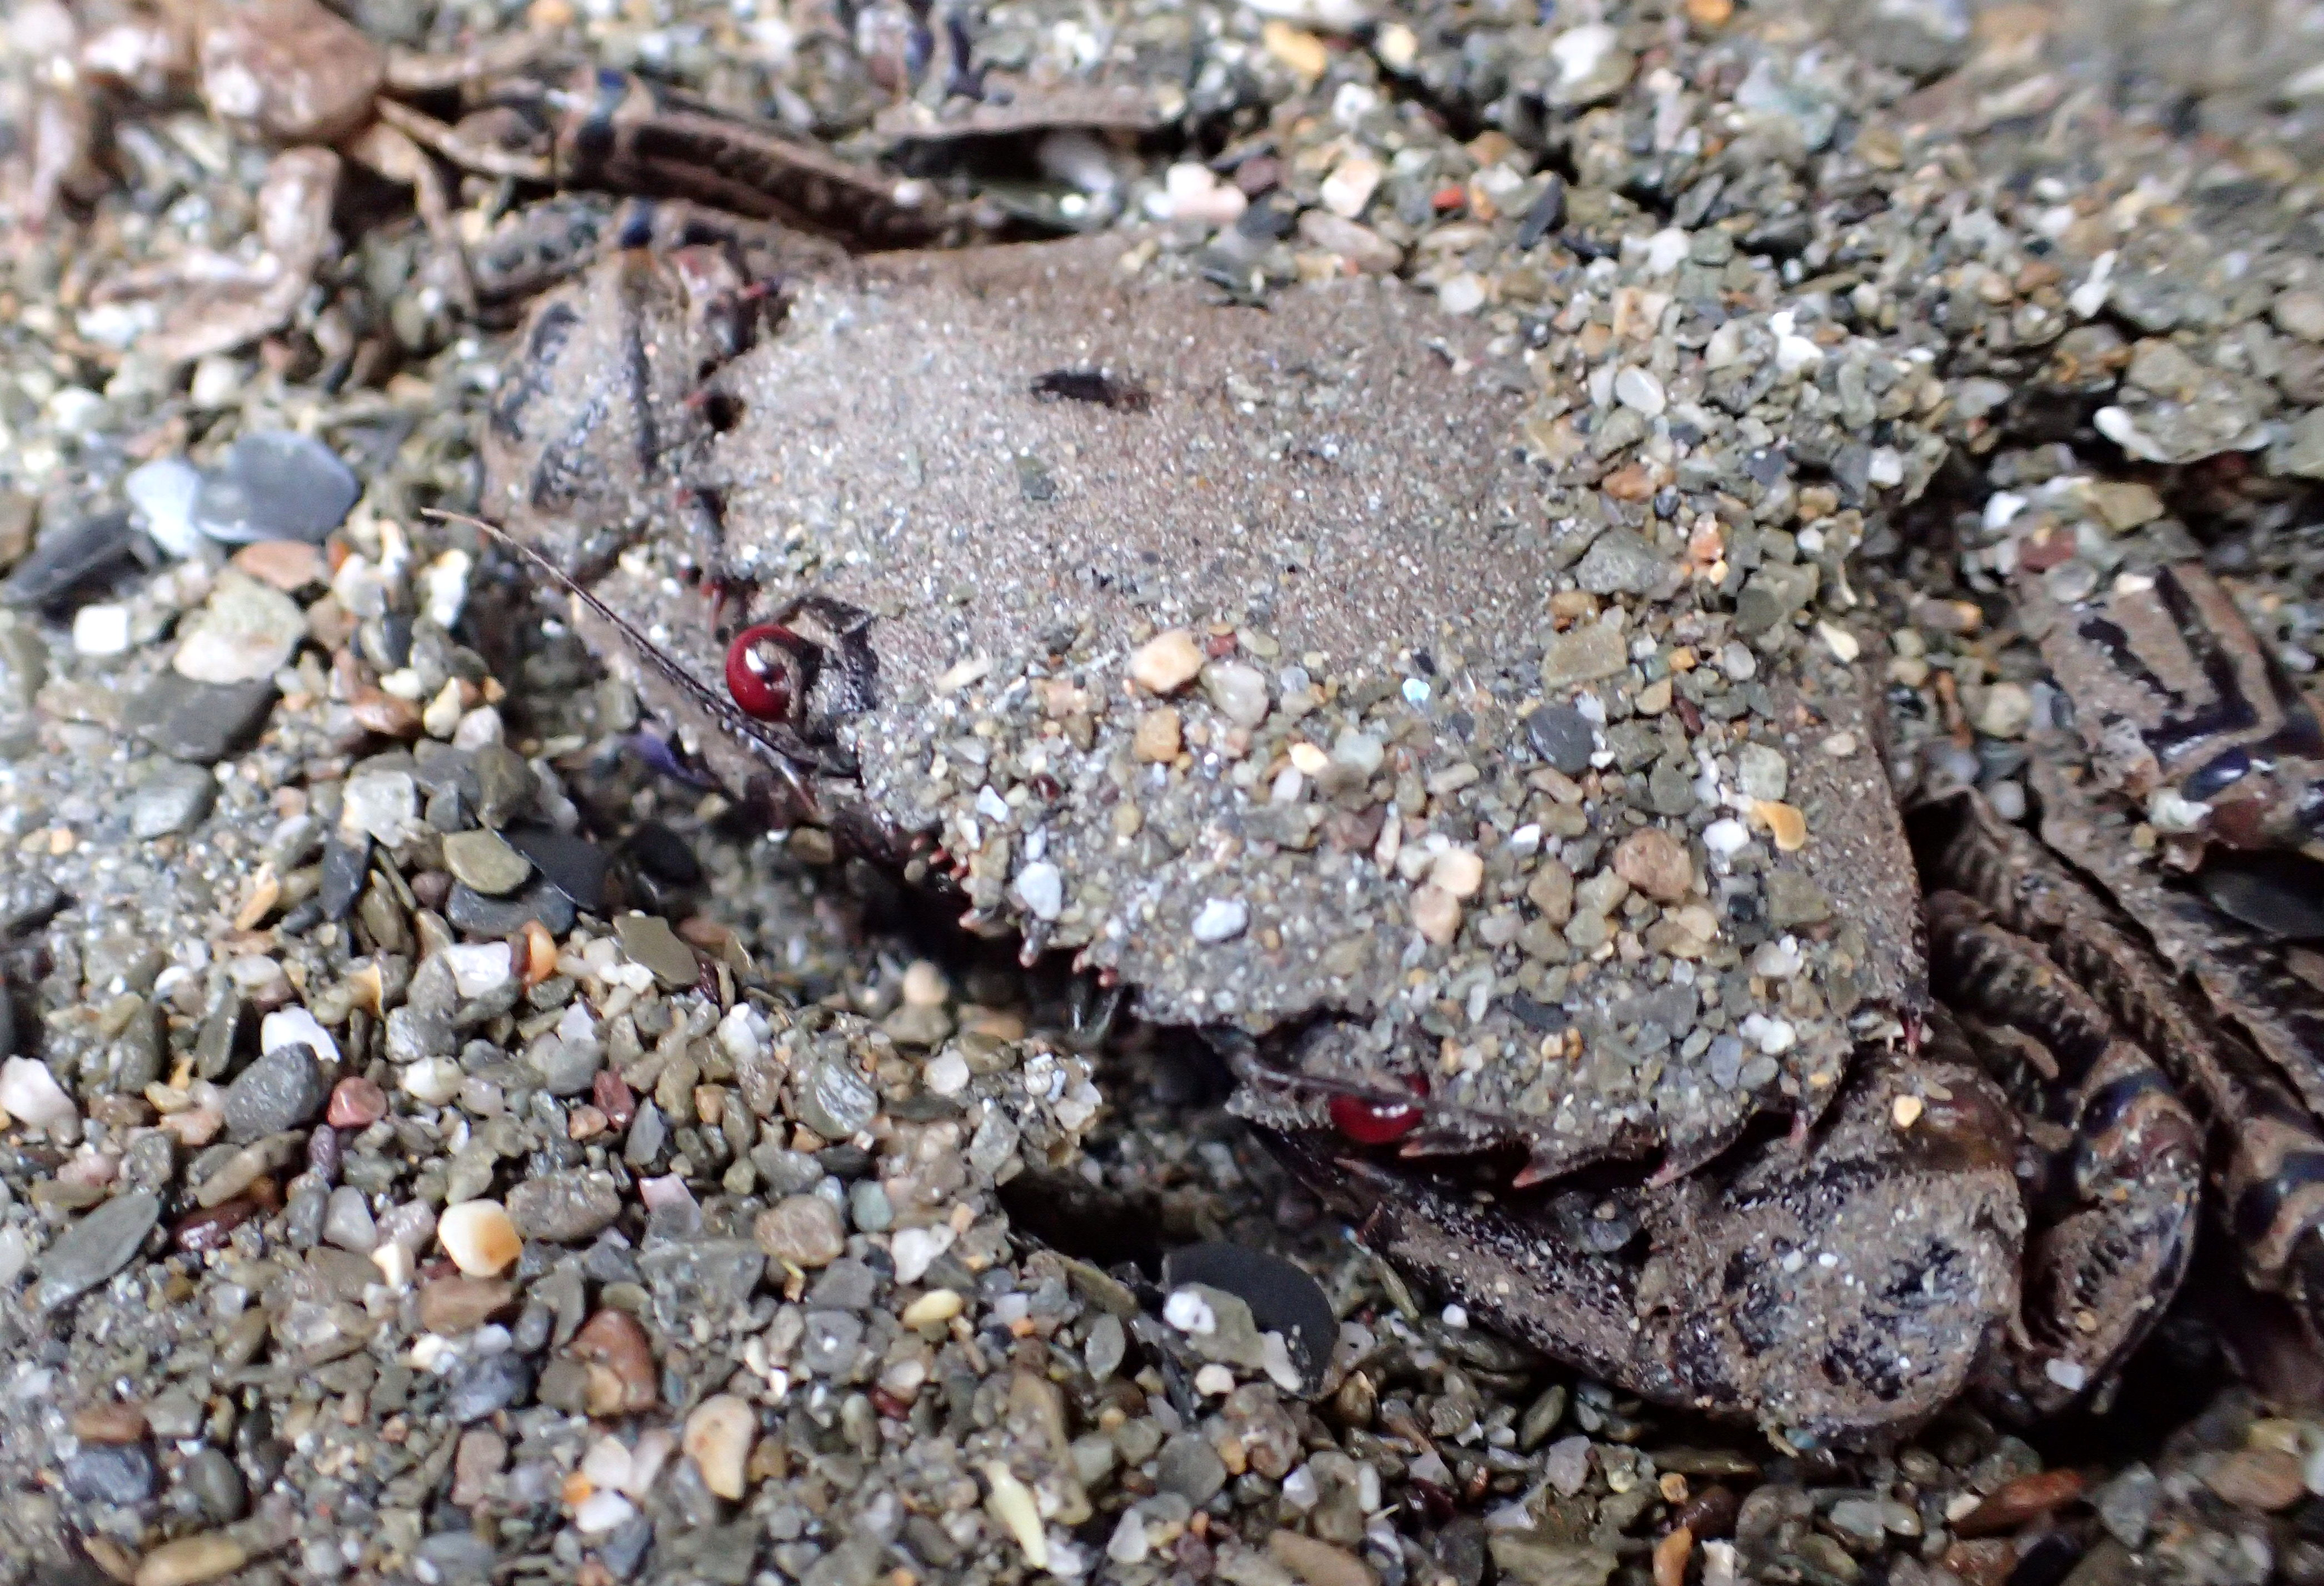 A velvet swimming crab part-buried in sand. It has red eyes, sharp teeth down the sides of its shell.